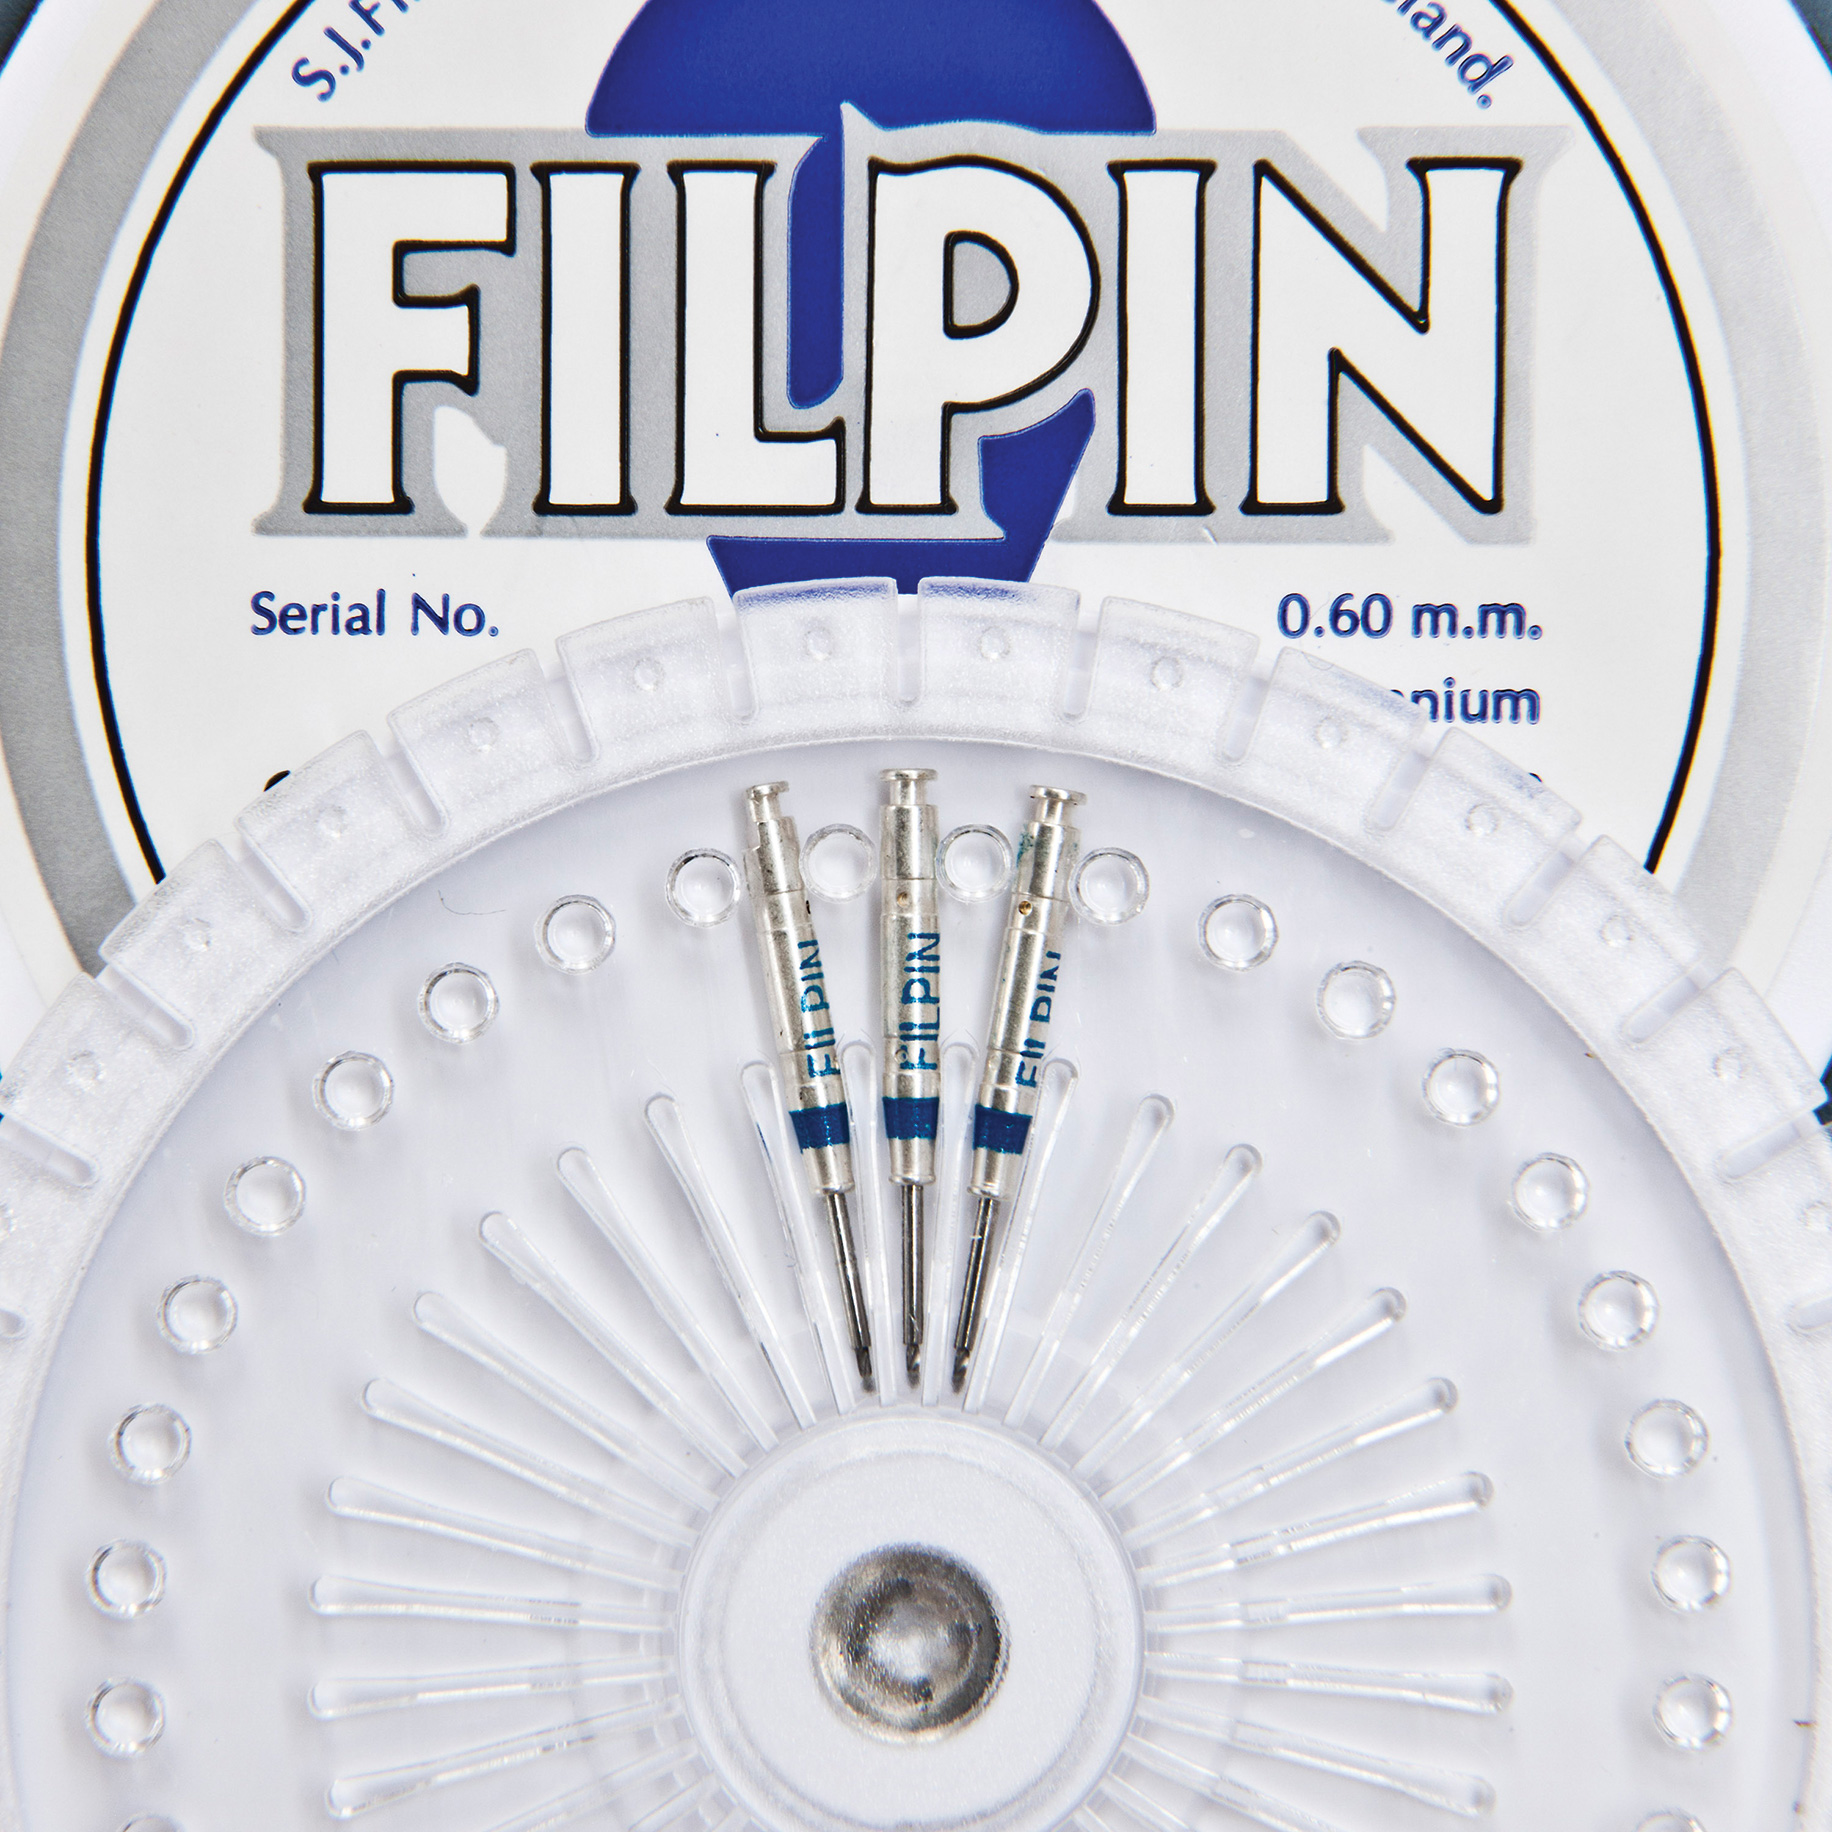 Stainless Steel Precision Drills - Filpin Drills Blue 0.60mm - Small